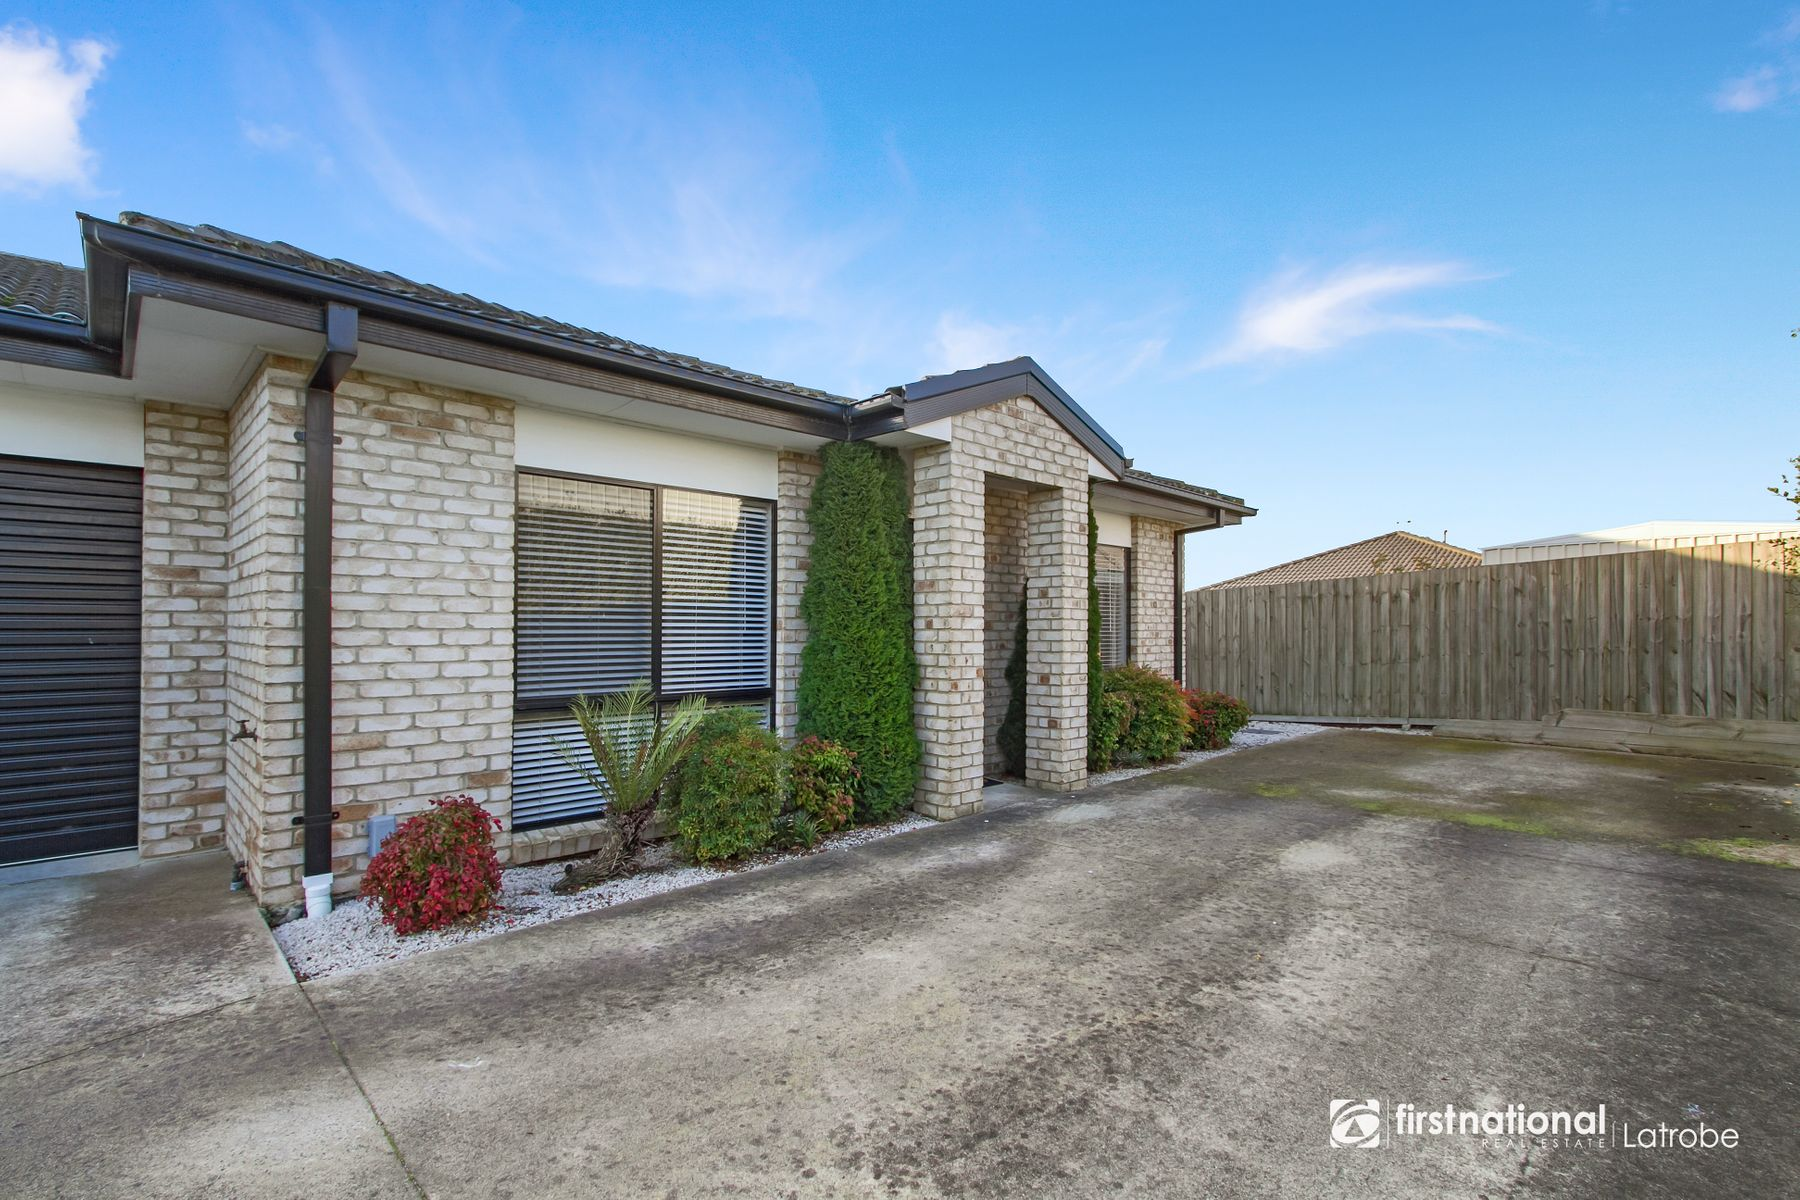 3/92 St Georges Road, Traralgon, VIC 3844